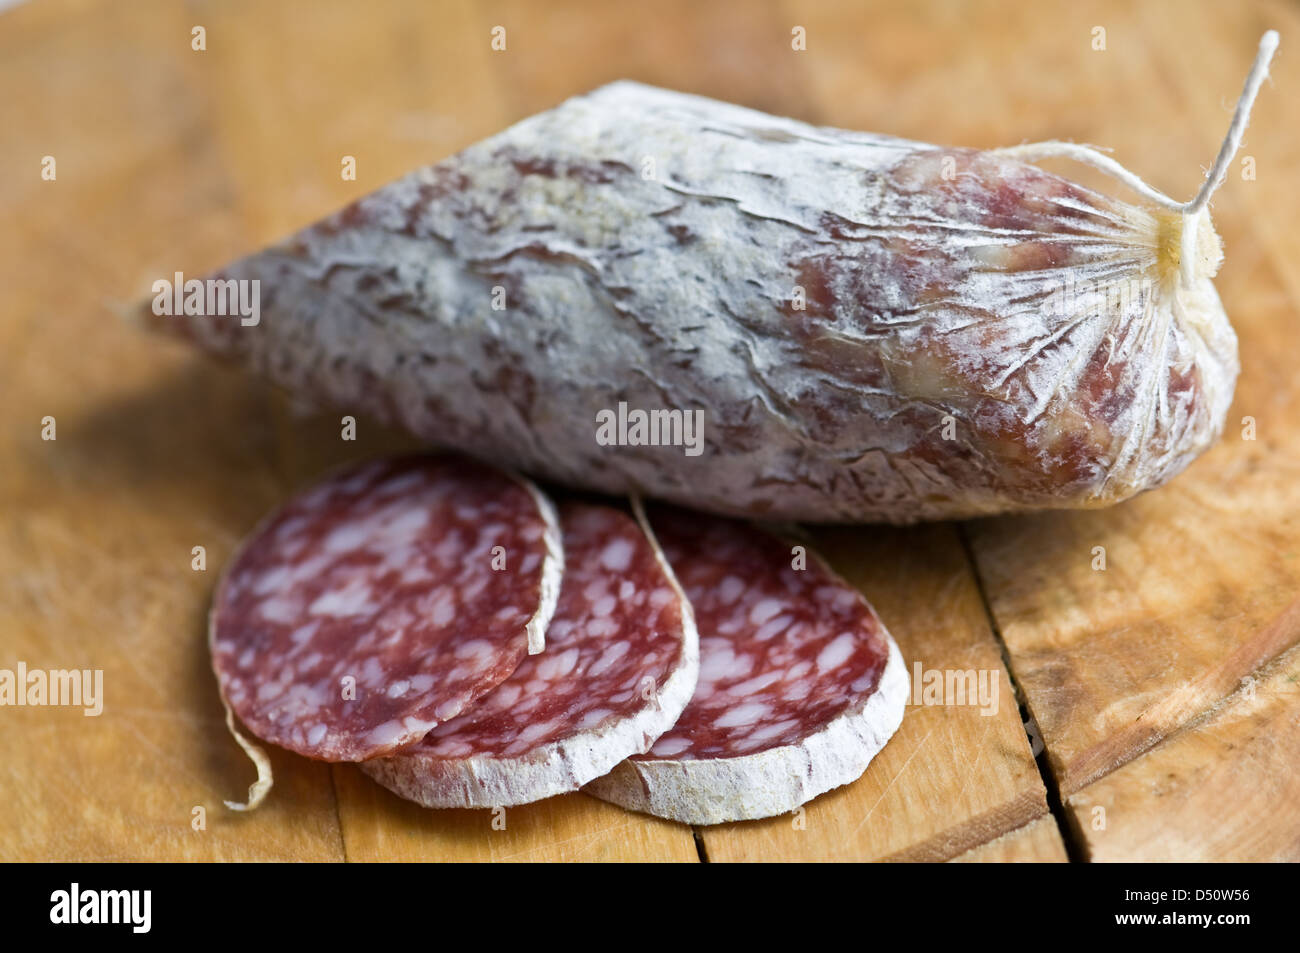 salami pieces on wood table - Stock Image